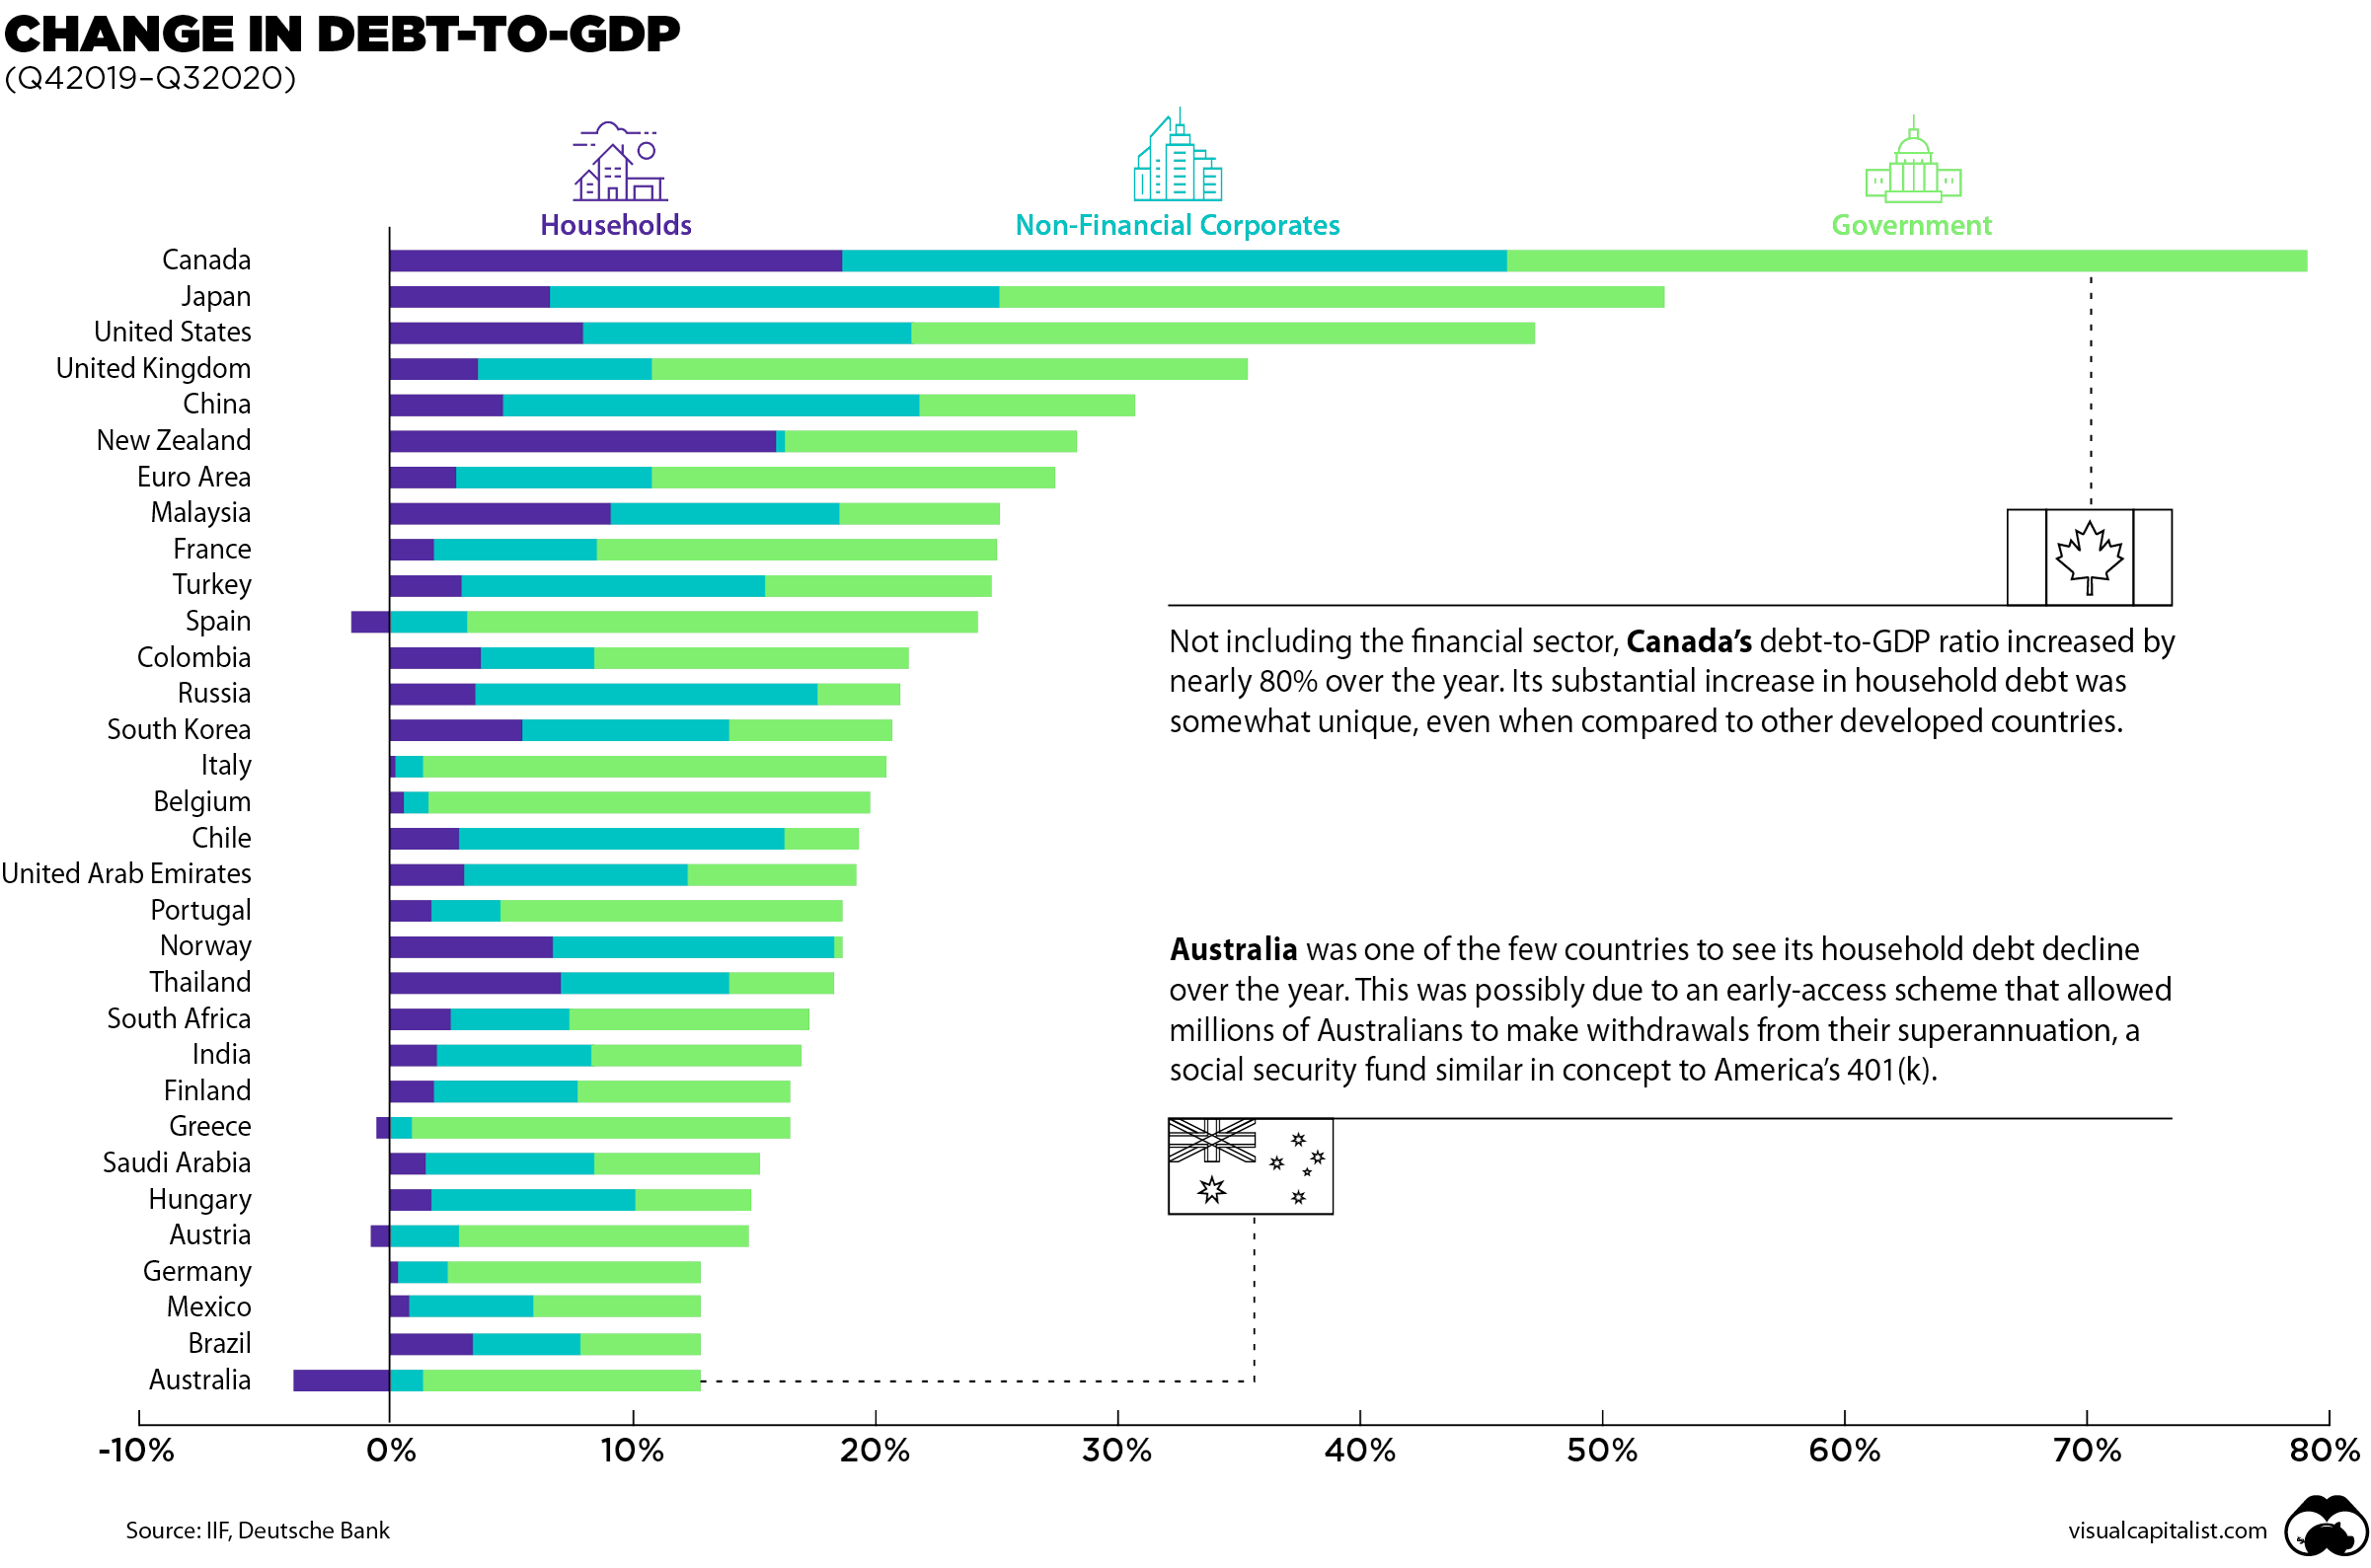 Change in debt-to-GDP ratio